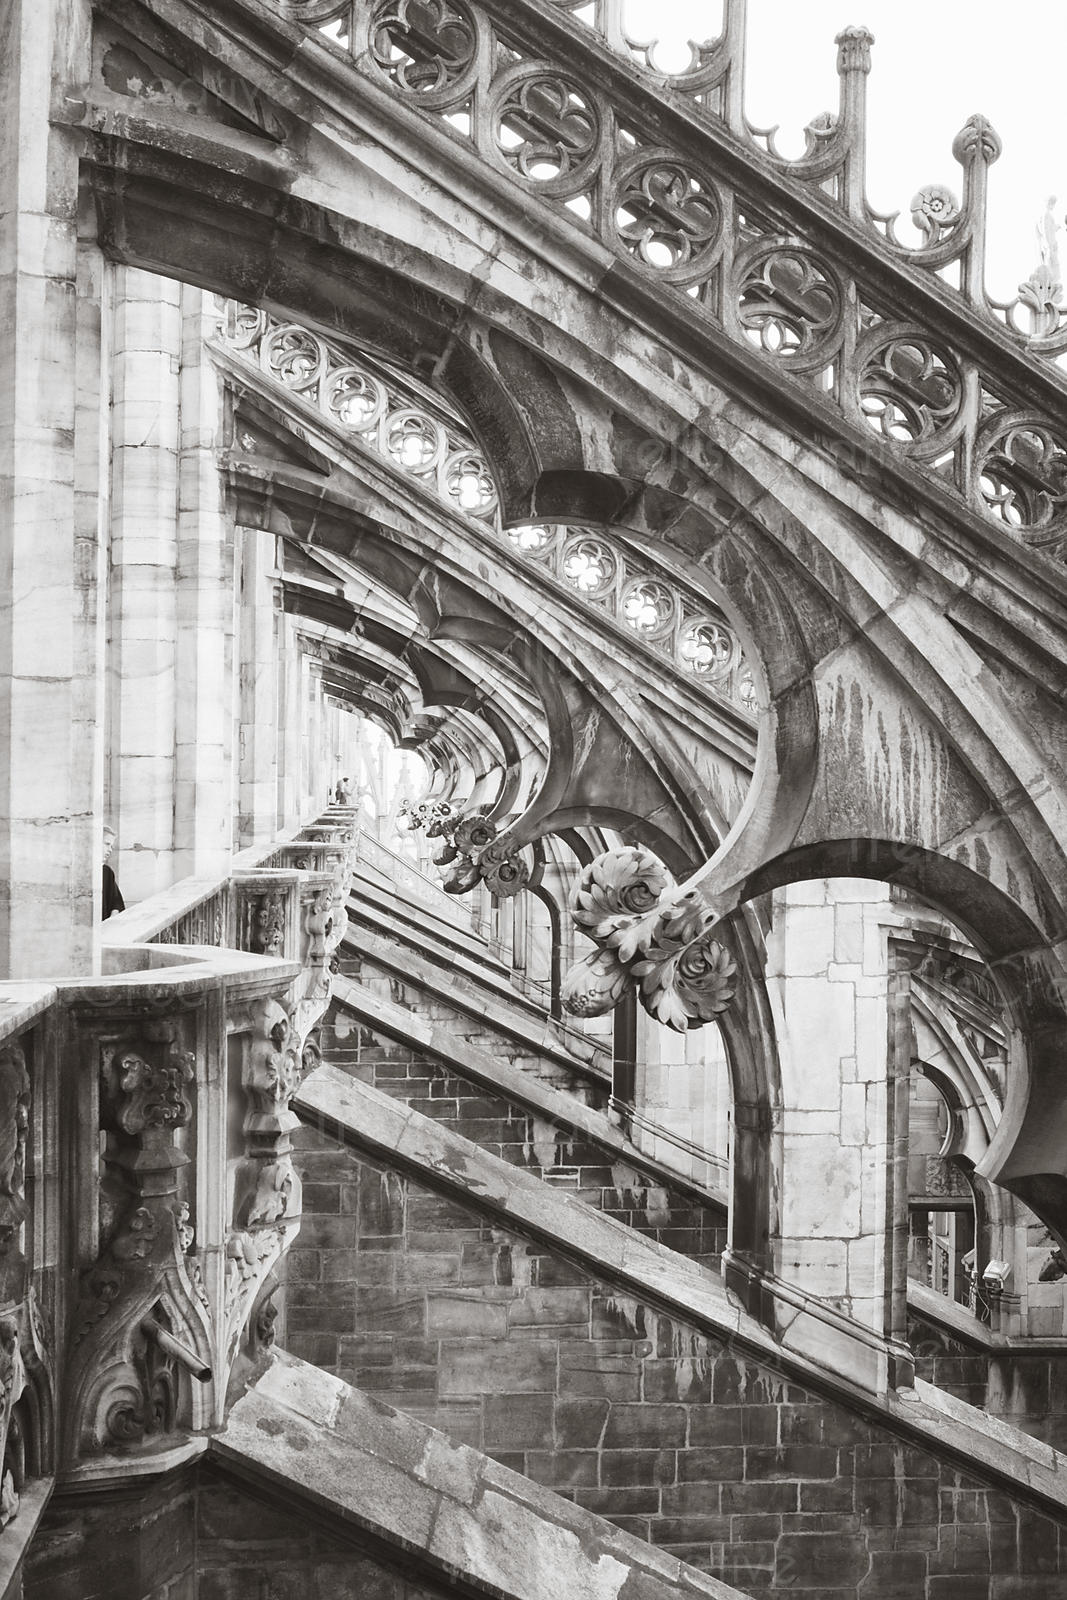 Detail view of the ornate roof of the Duomo di Milano